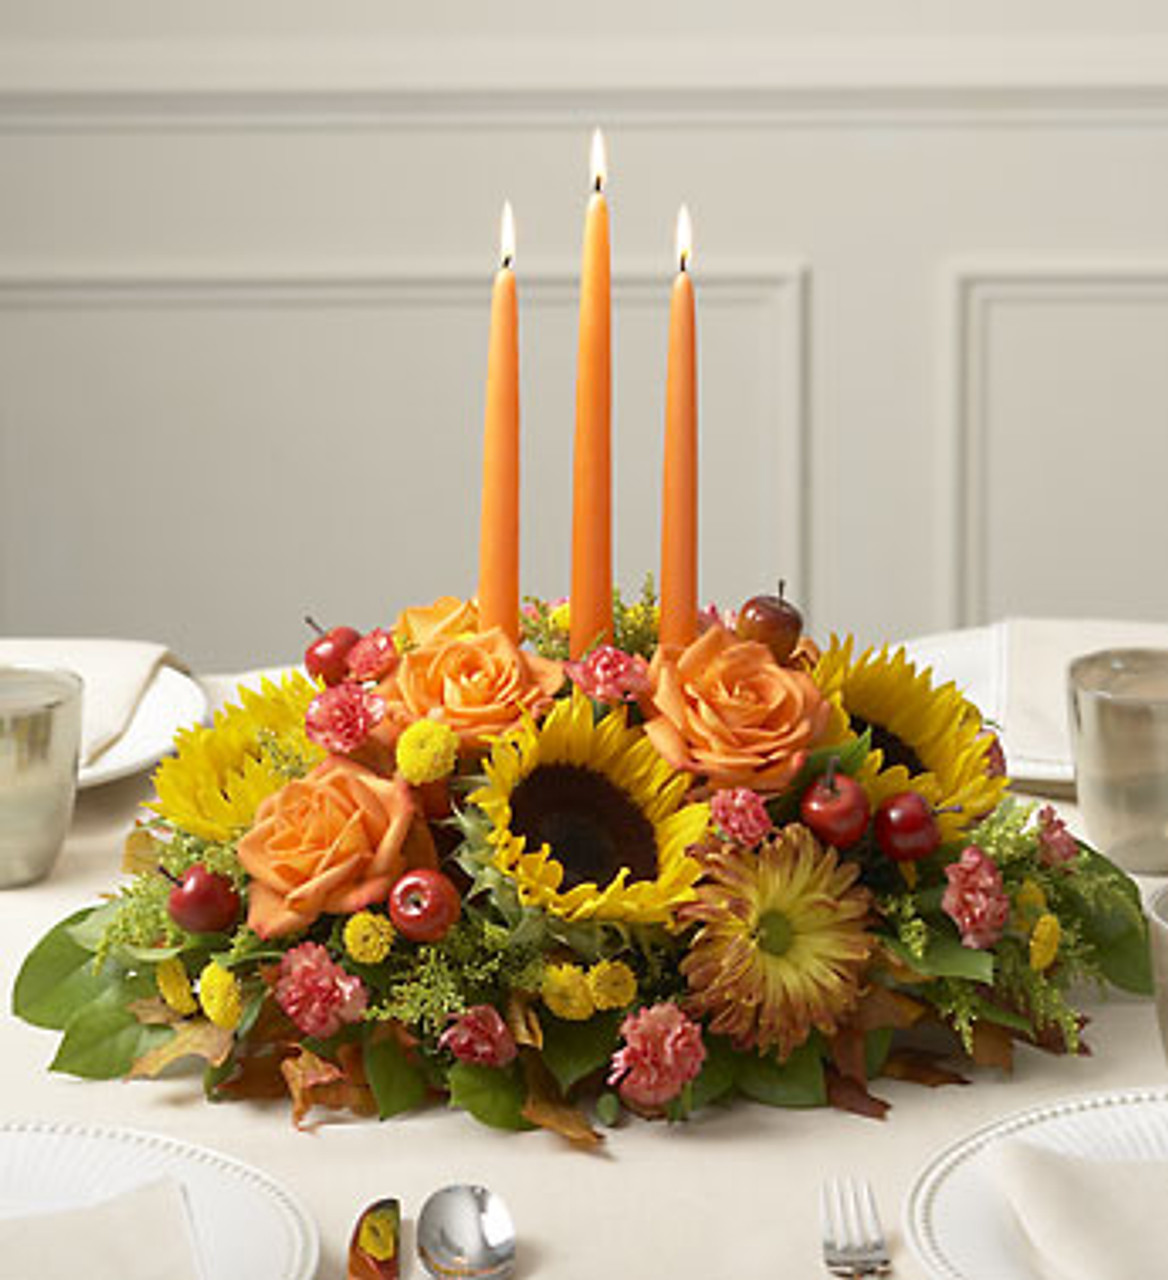 Autumn's Bounty Centerpiece